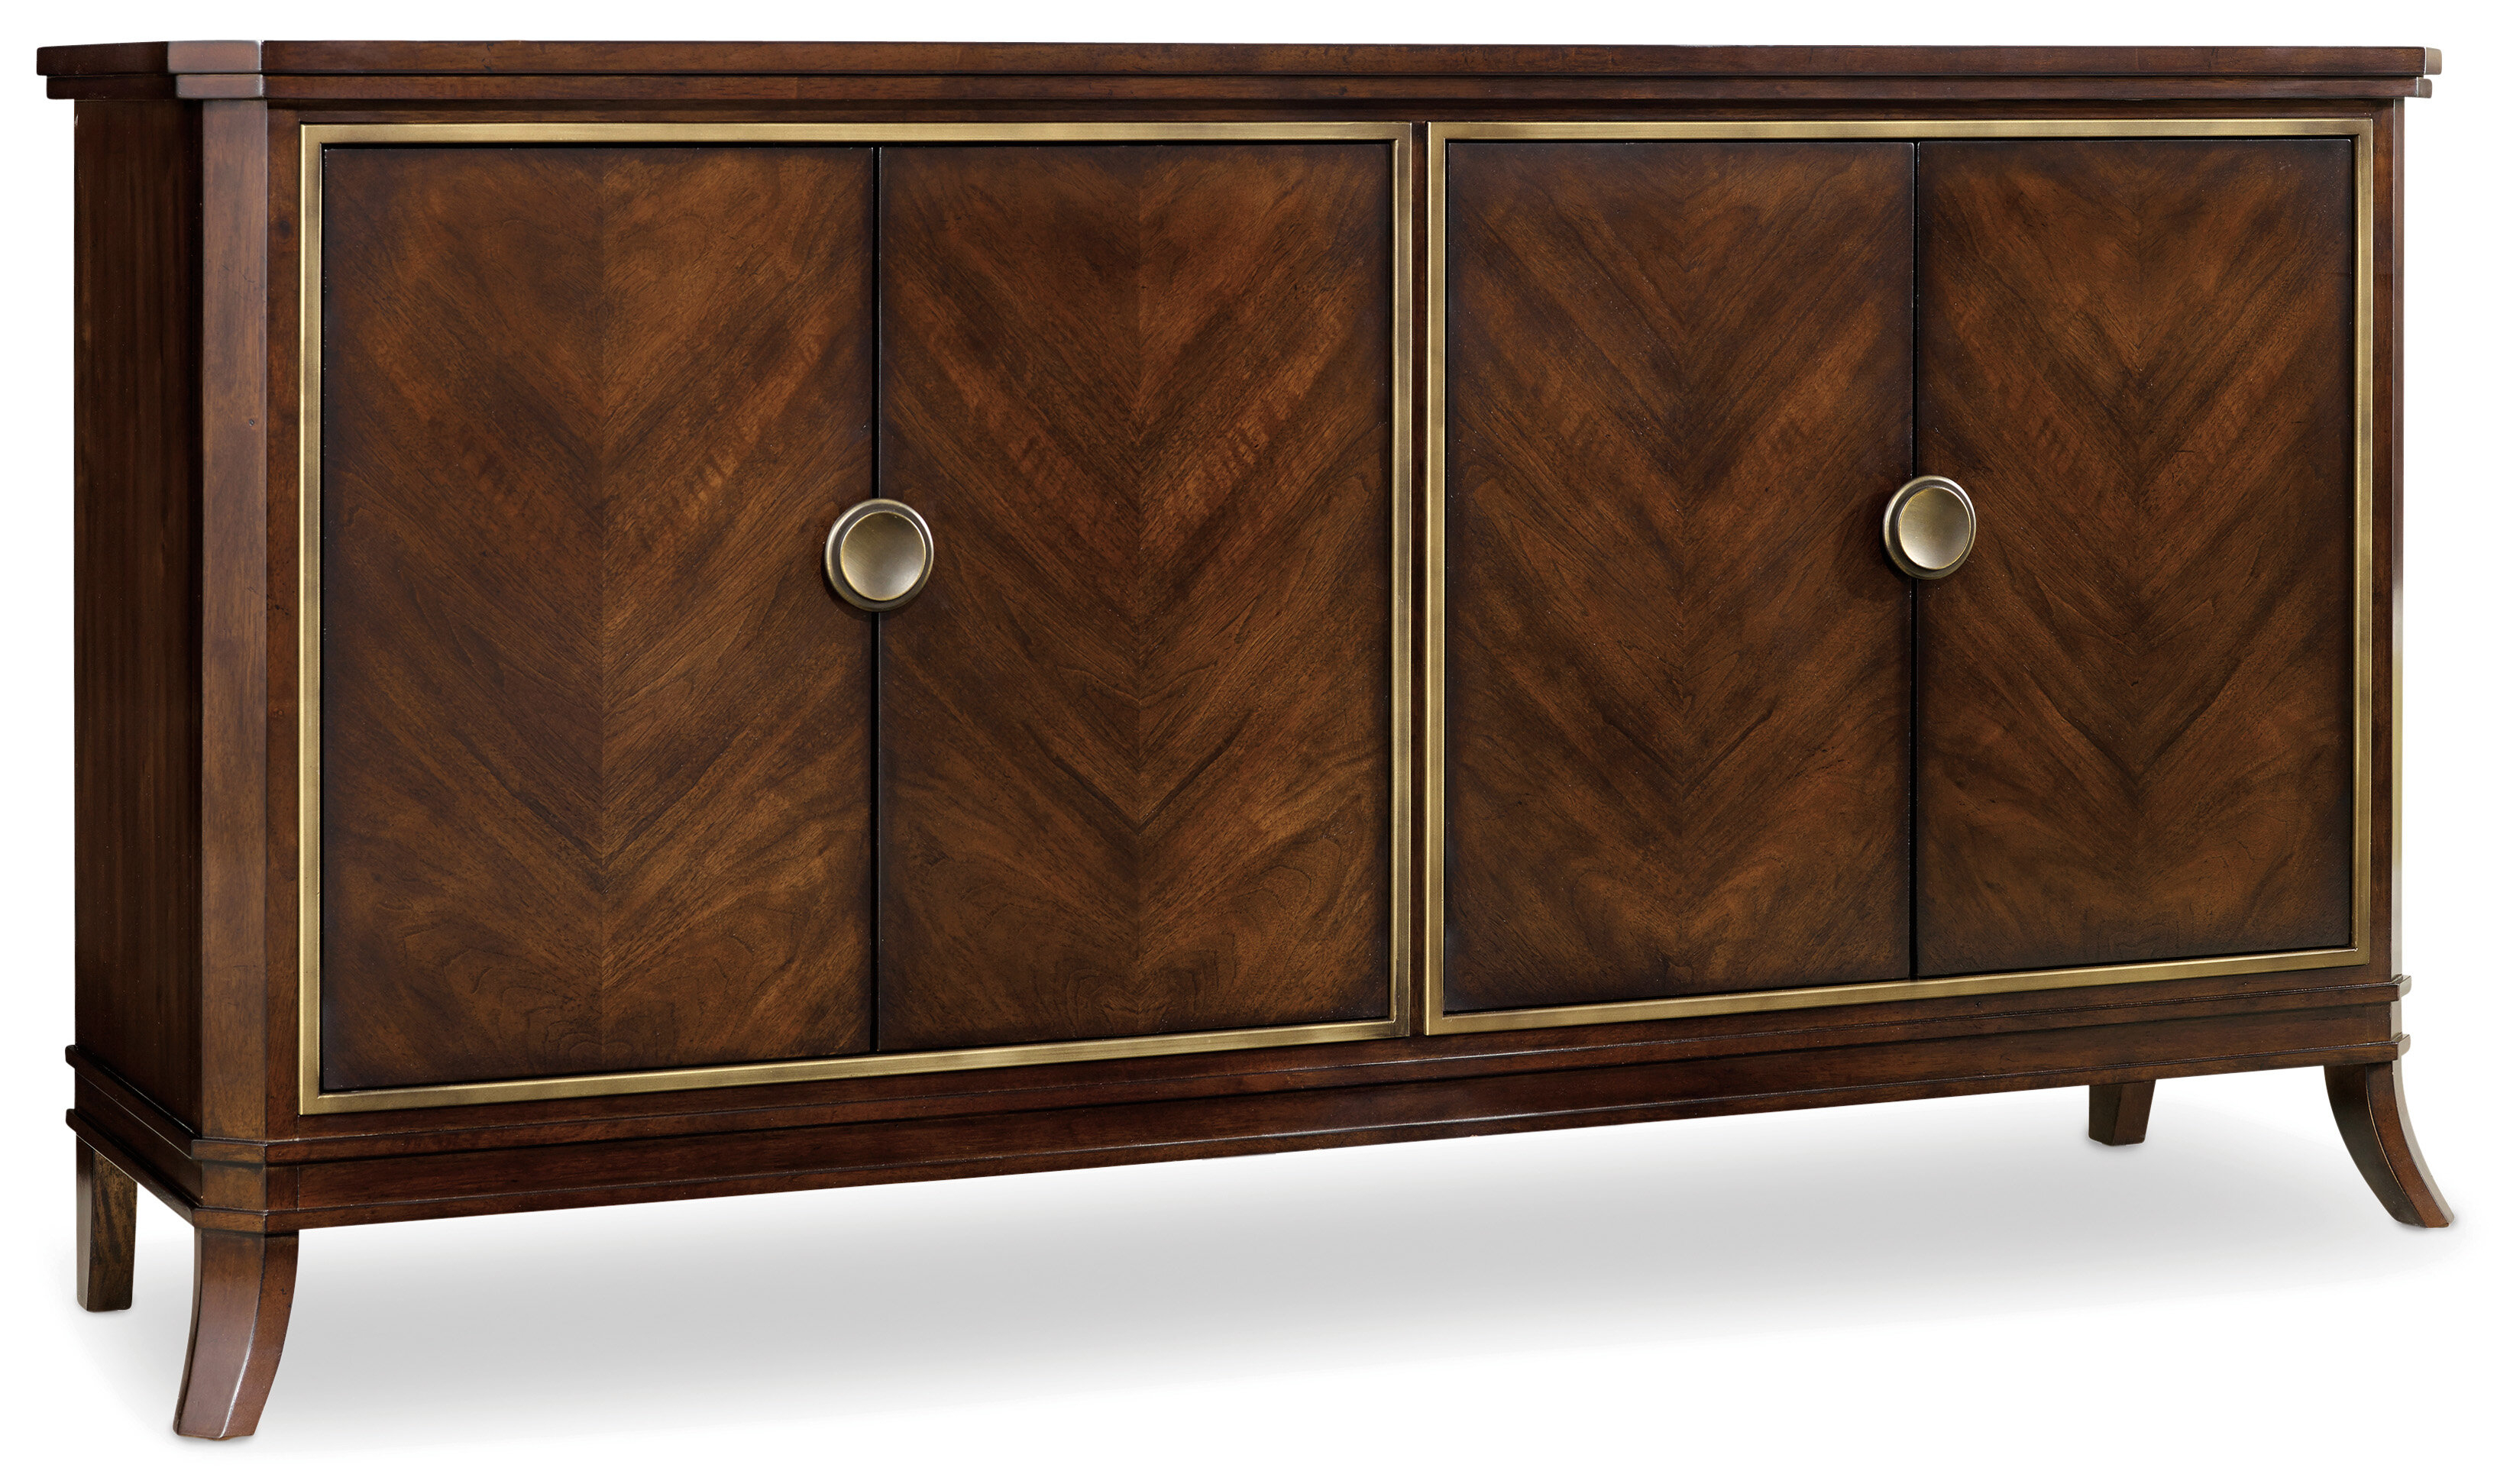 Hooker Furniture Palisade Sideboard & Reviews | Wayfair pertaining to Palisade Sideboards (Image 14 of 30)